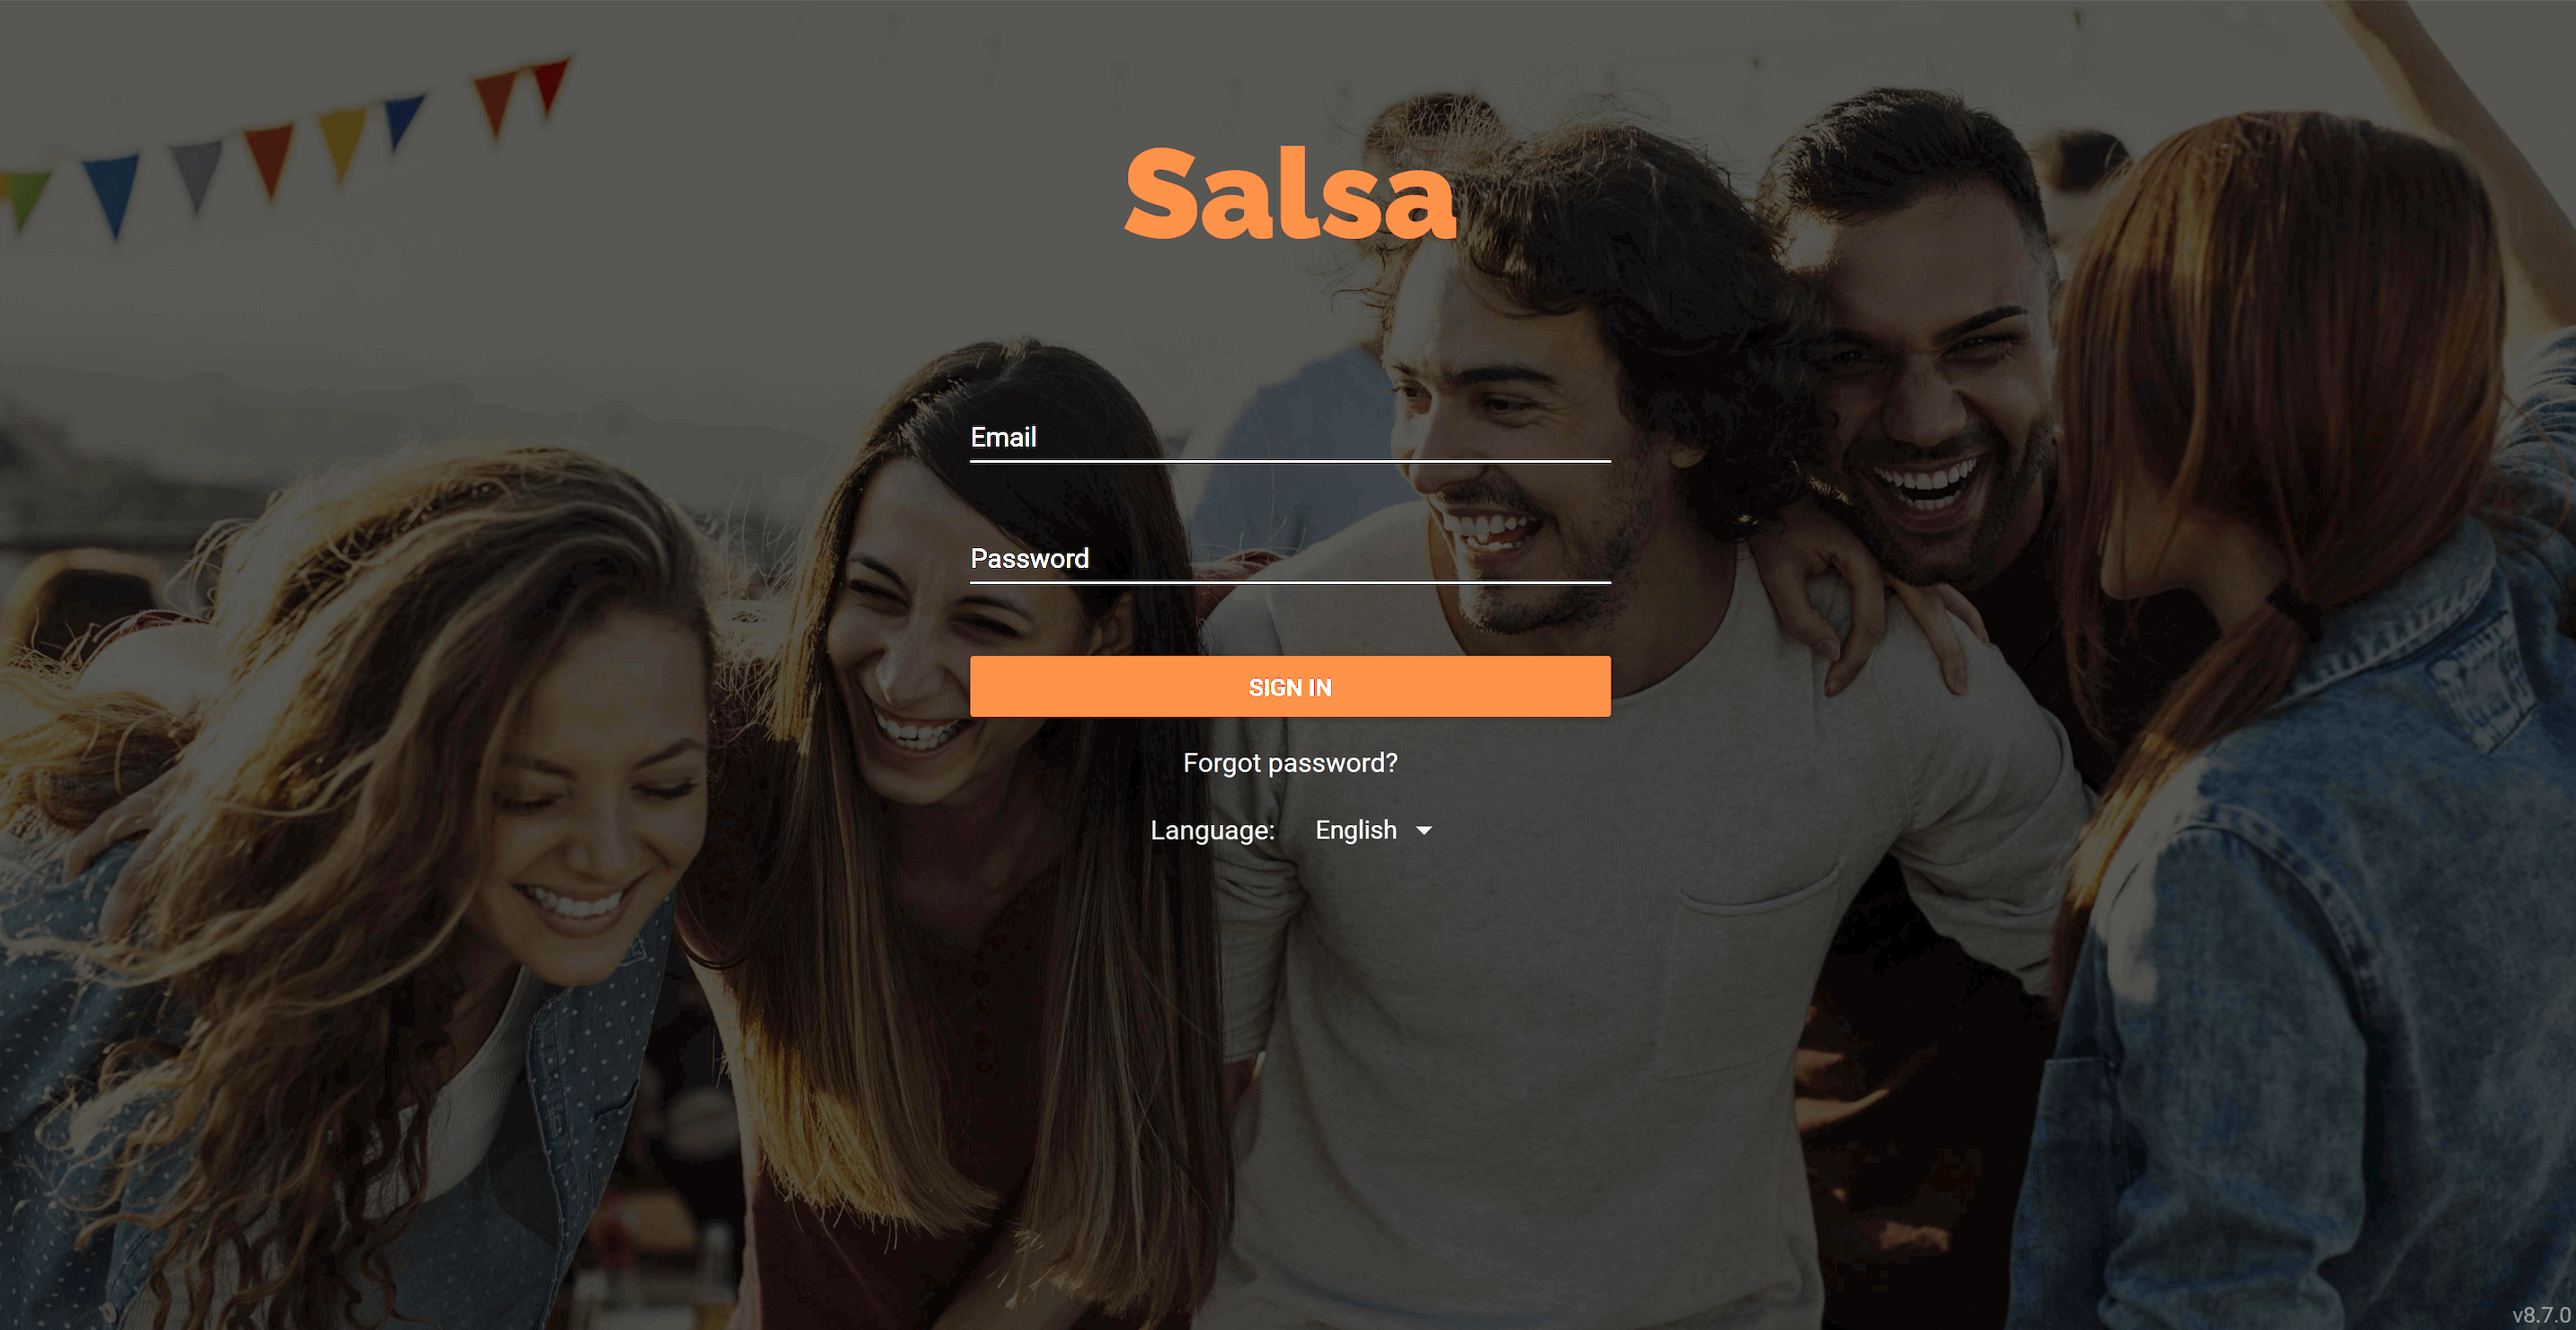 Salsa - atmail white label email example